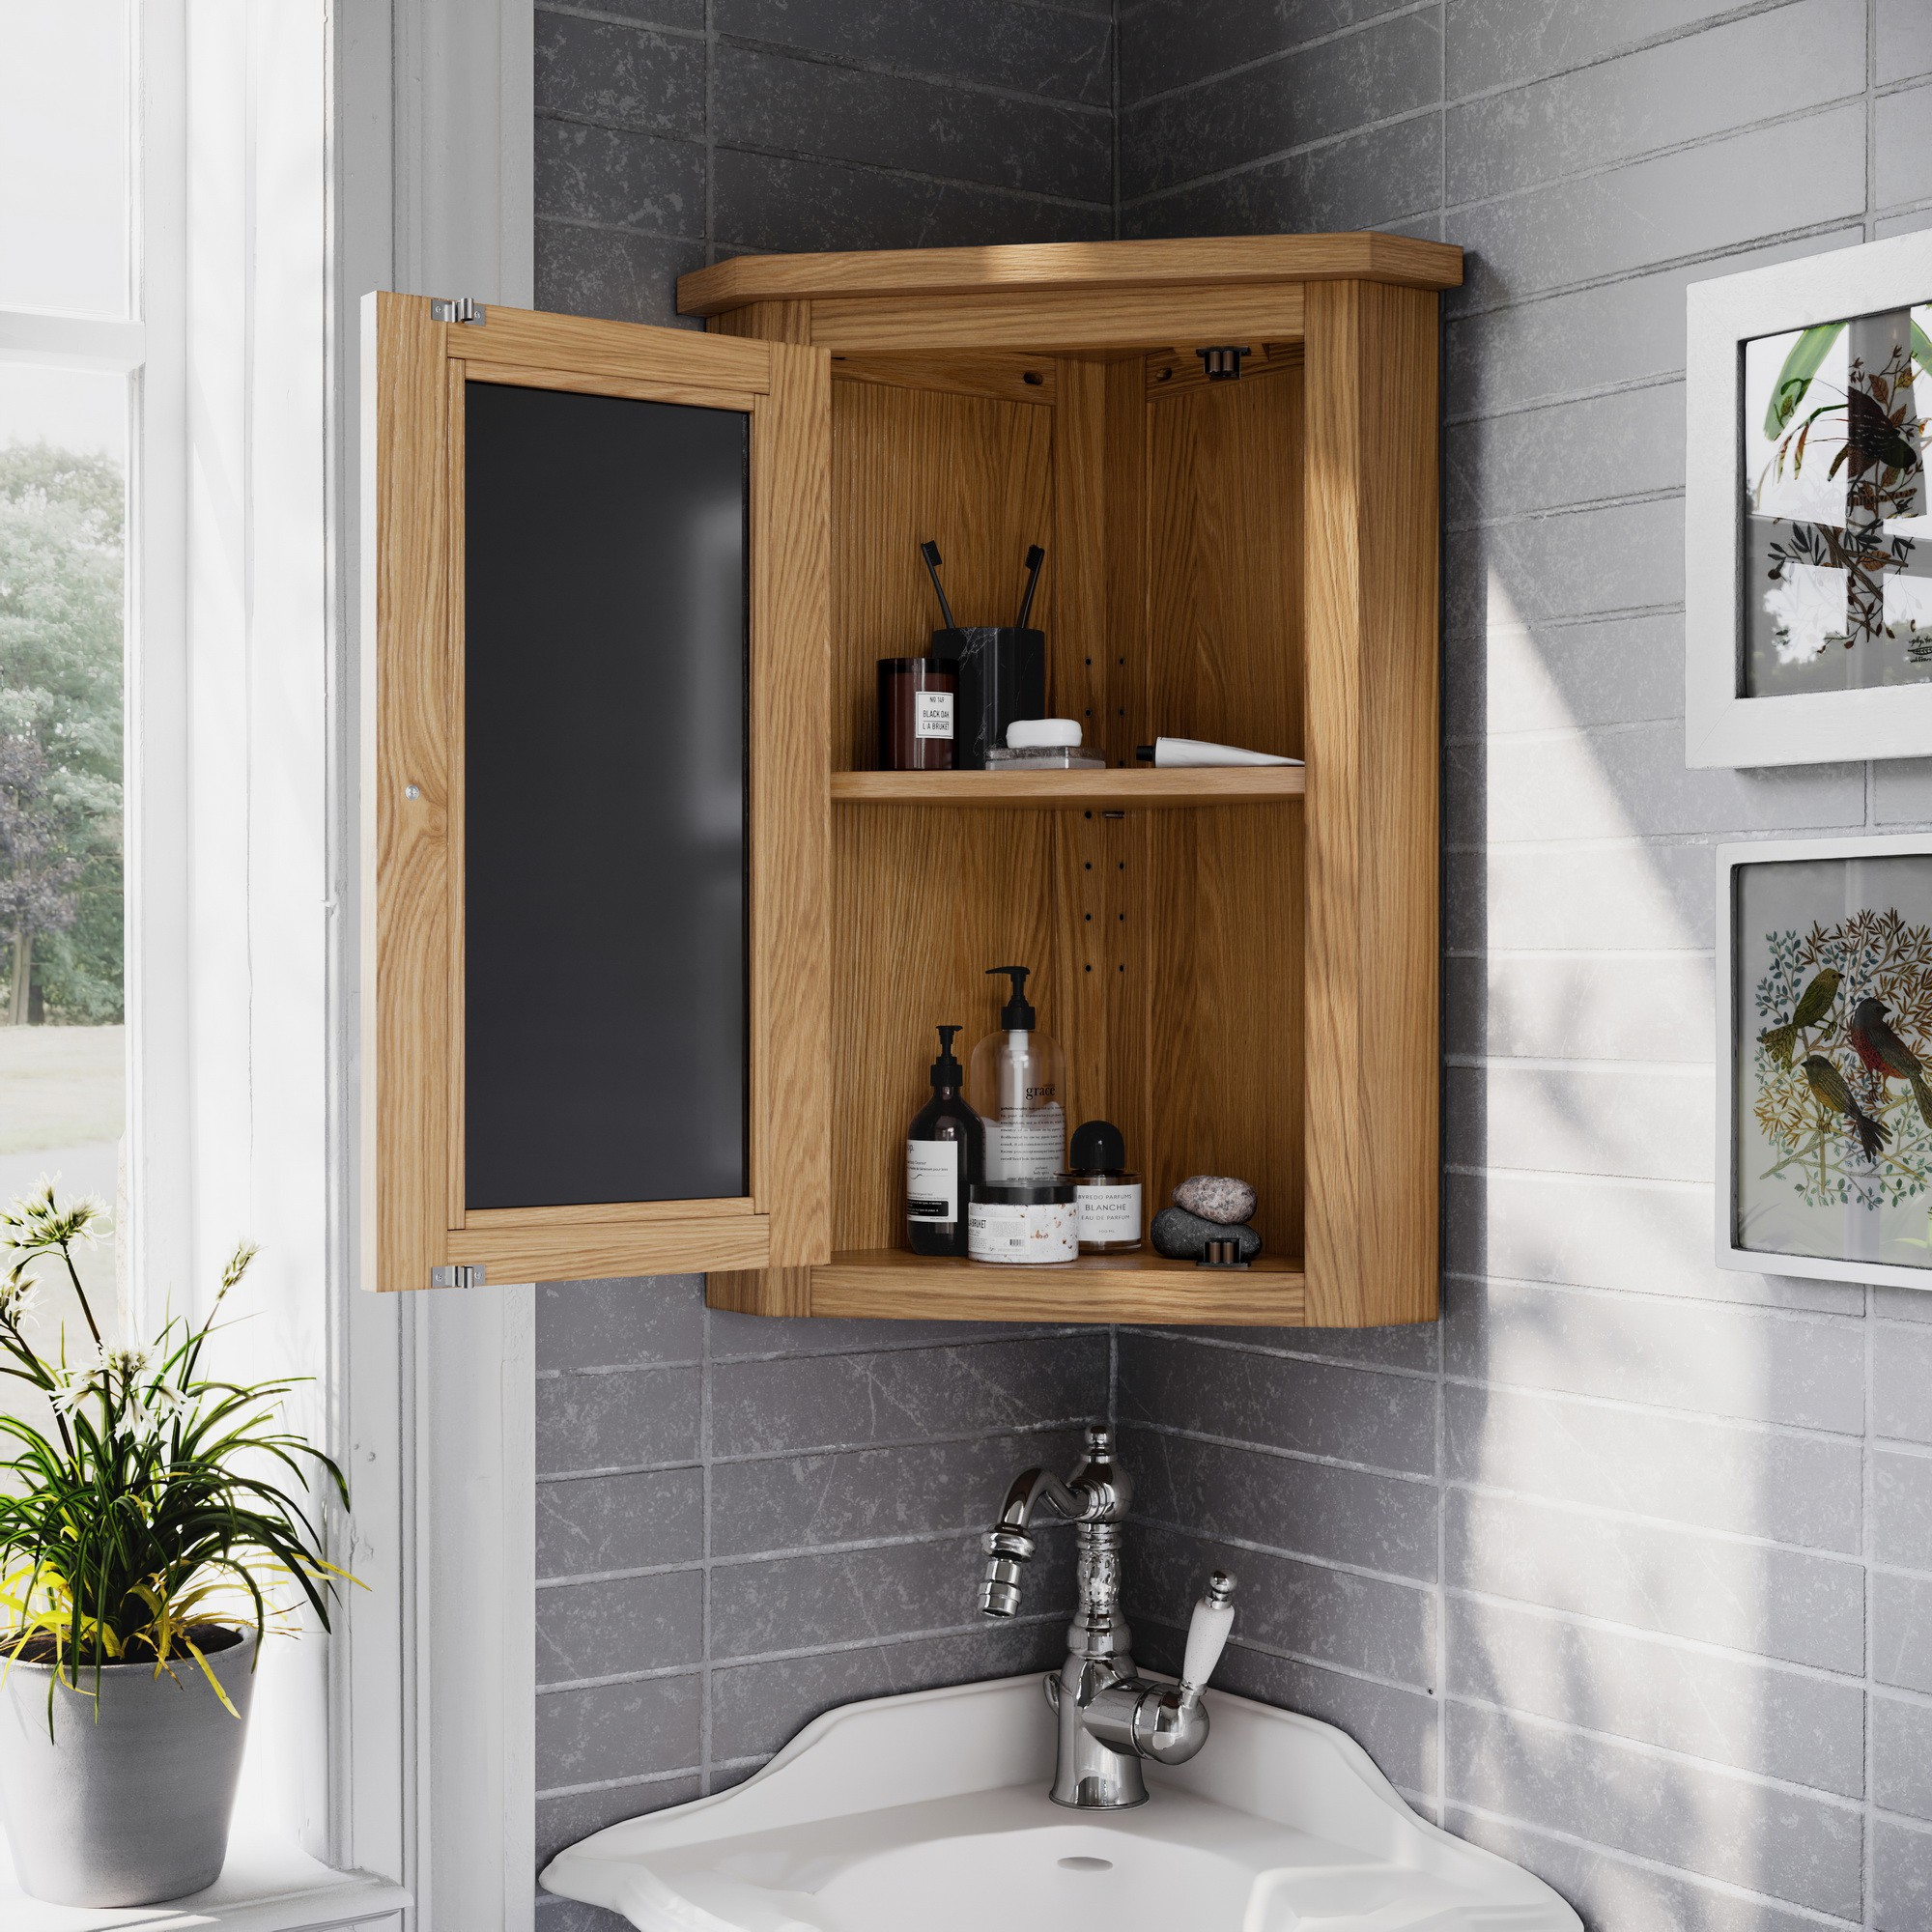 Waverly Solid Oak Small Bathroom Corner Cabinet Cupboard Hallowood